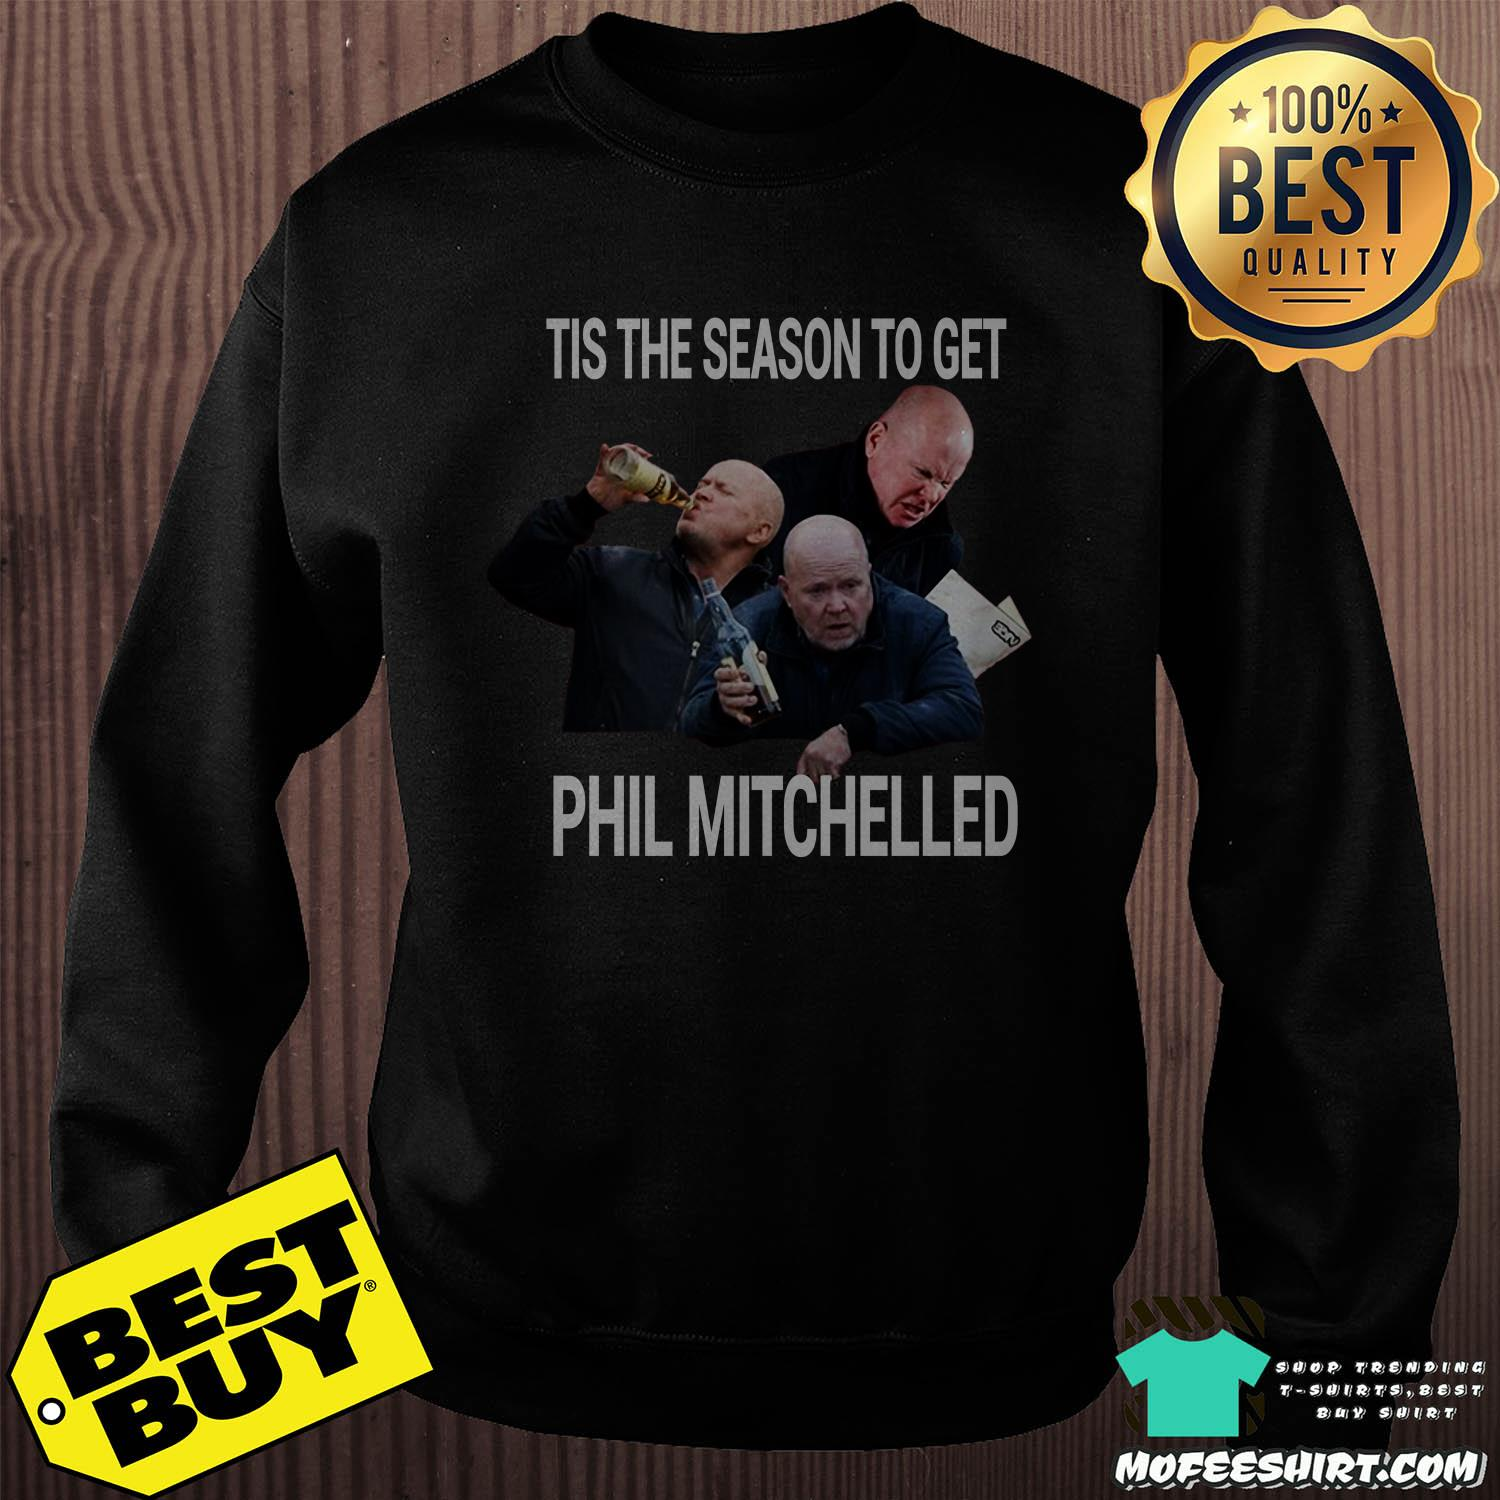 Christmas Jumper Tis The Season To Get Phil Mitchelled Shirt Sweater